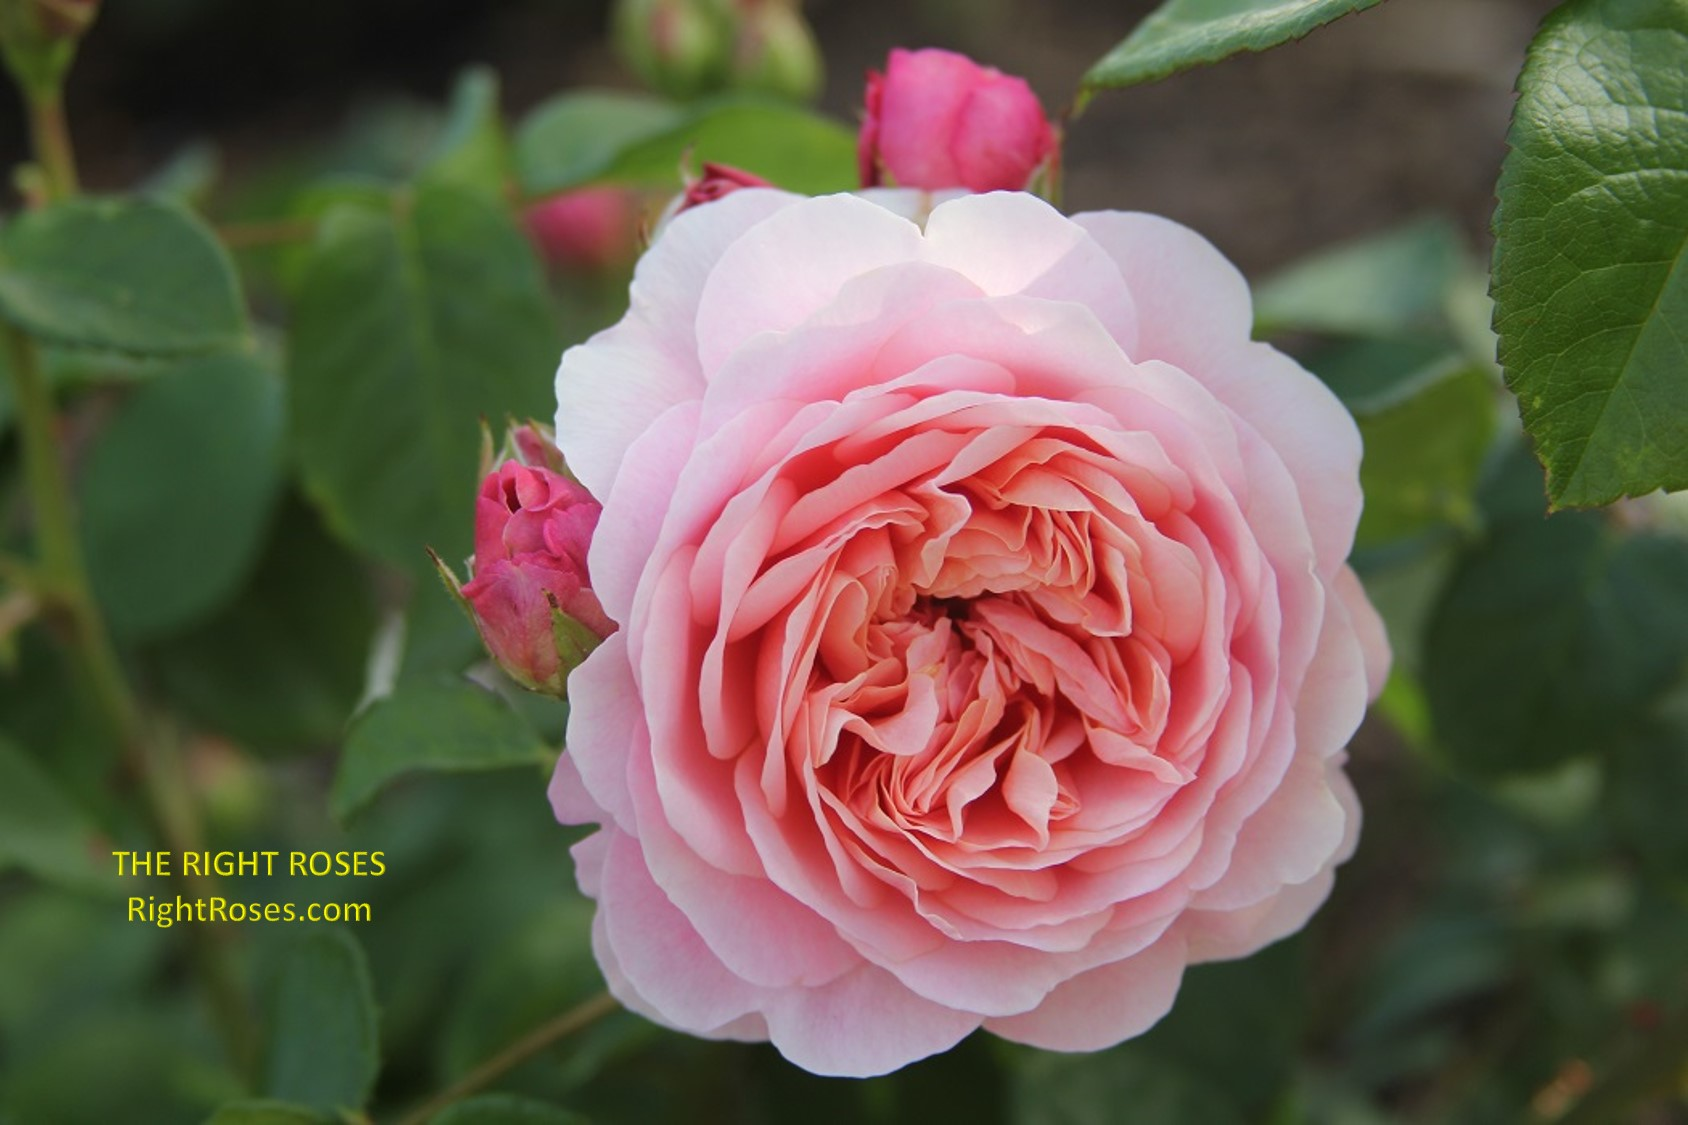 eustacia vye rose review the right roses score best top garden store david austin english roses rose products rose rating